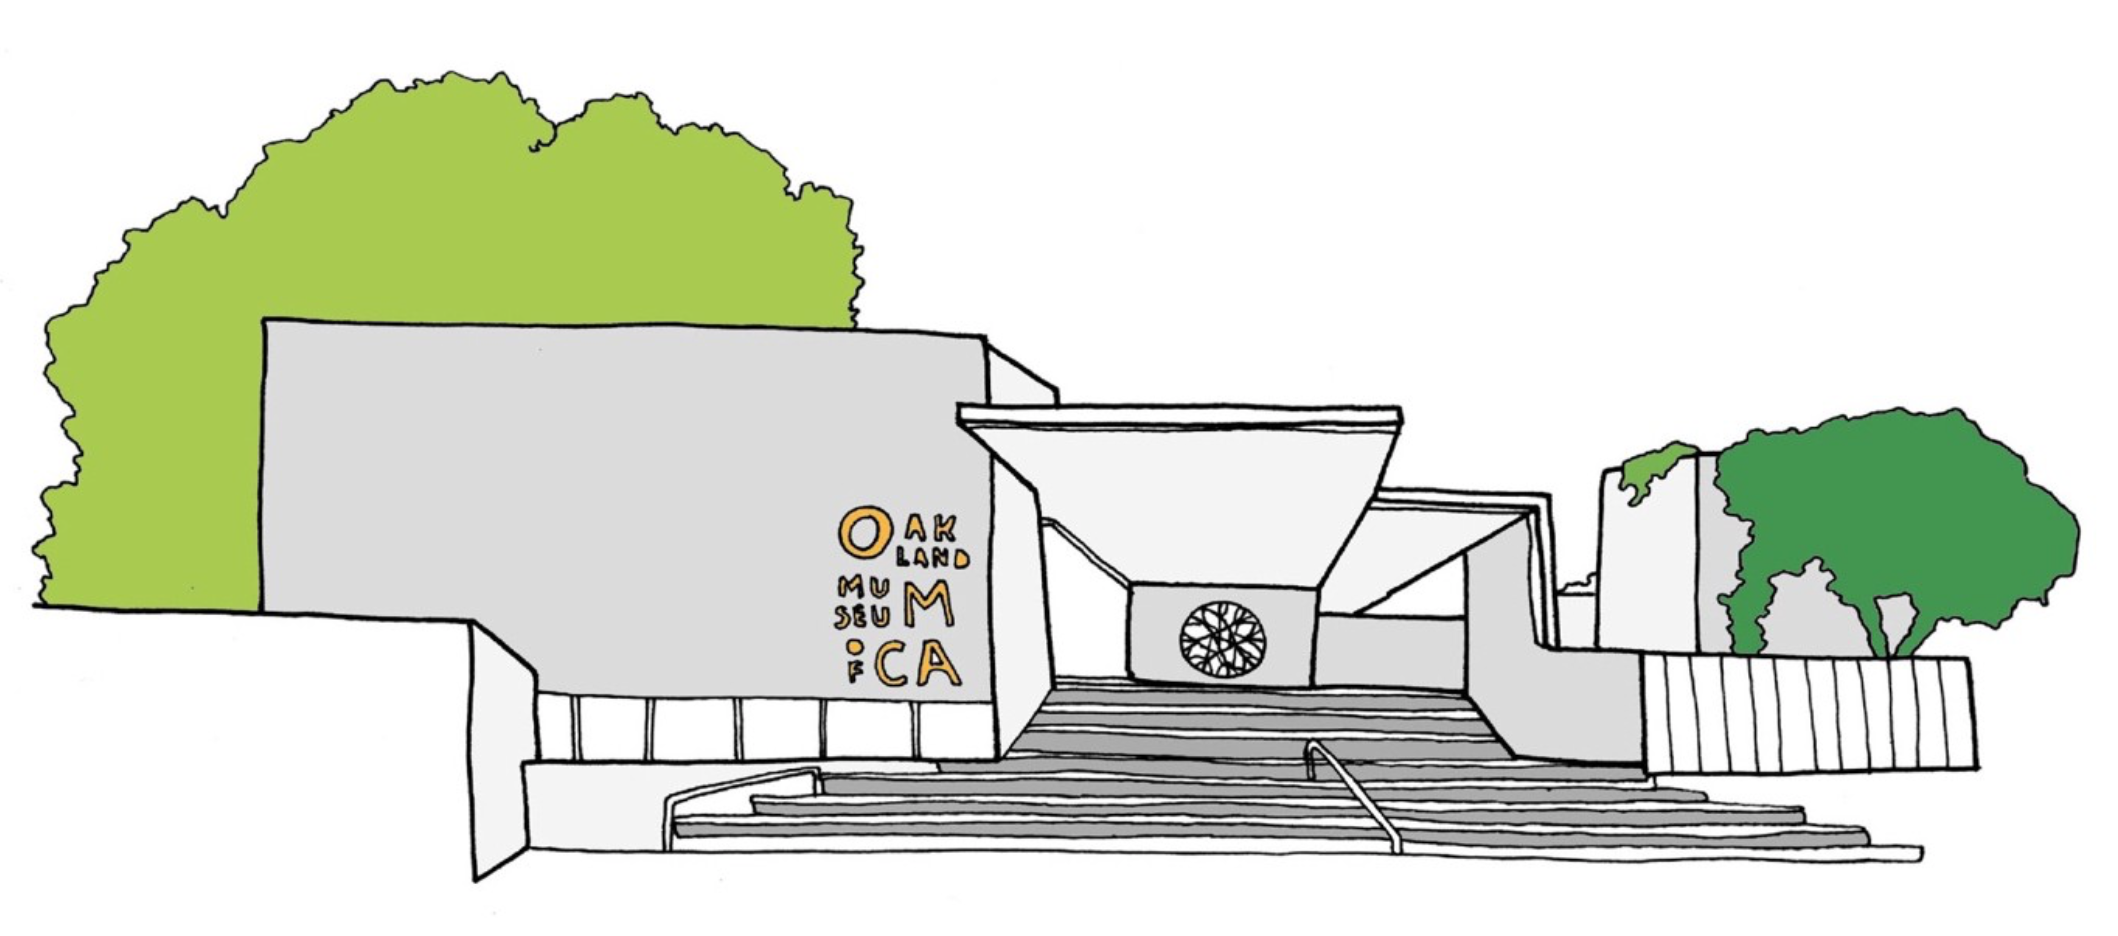 An illustration of the facade of the Oakland Museum of California.